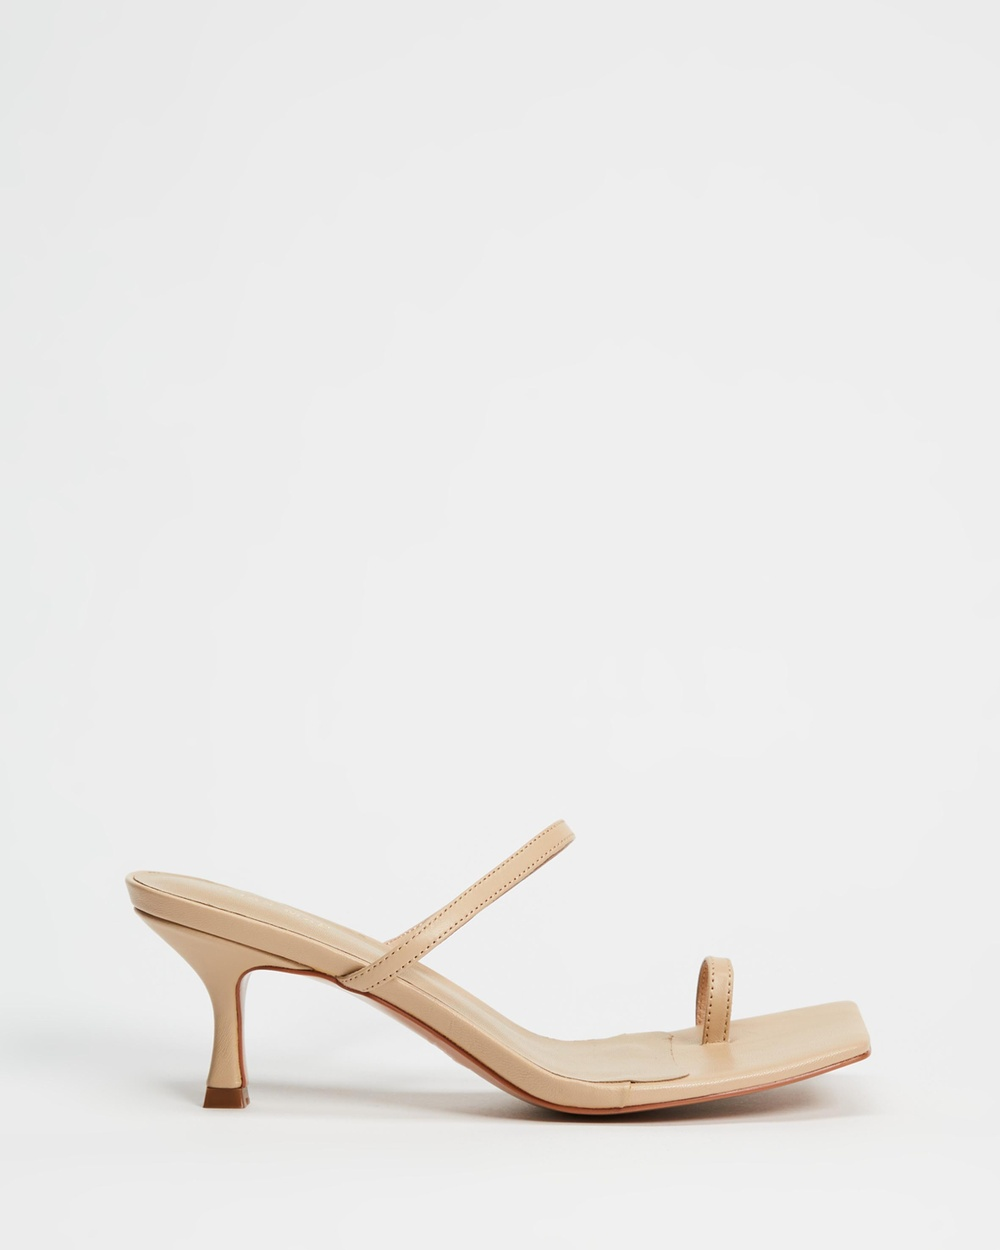 Alias Mae Baker Sandals Natural Leather